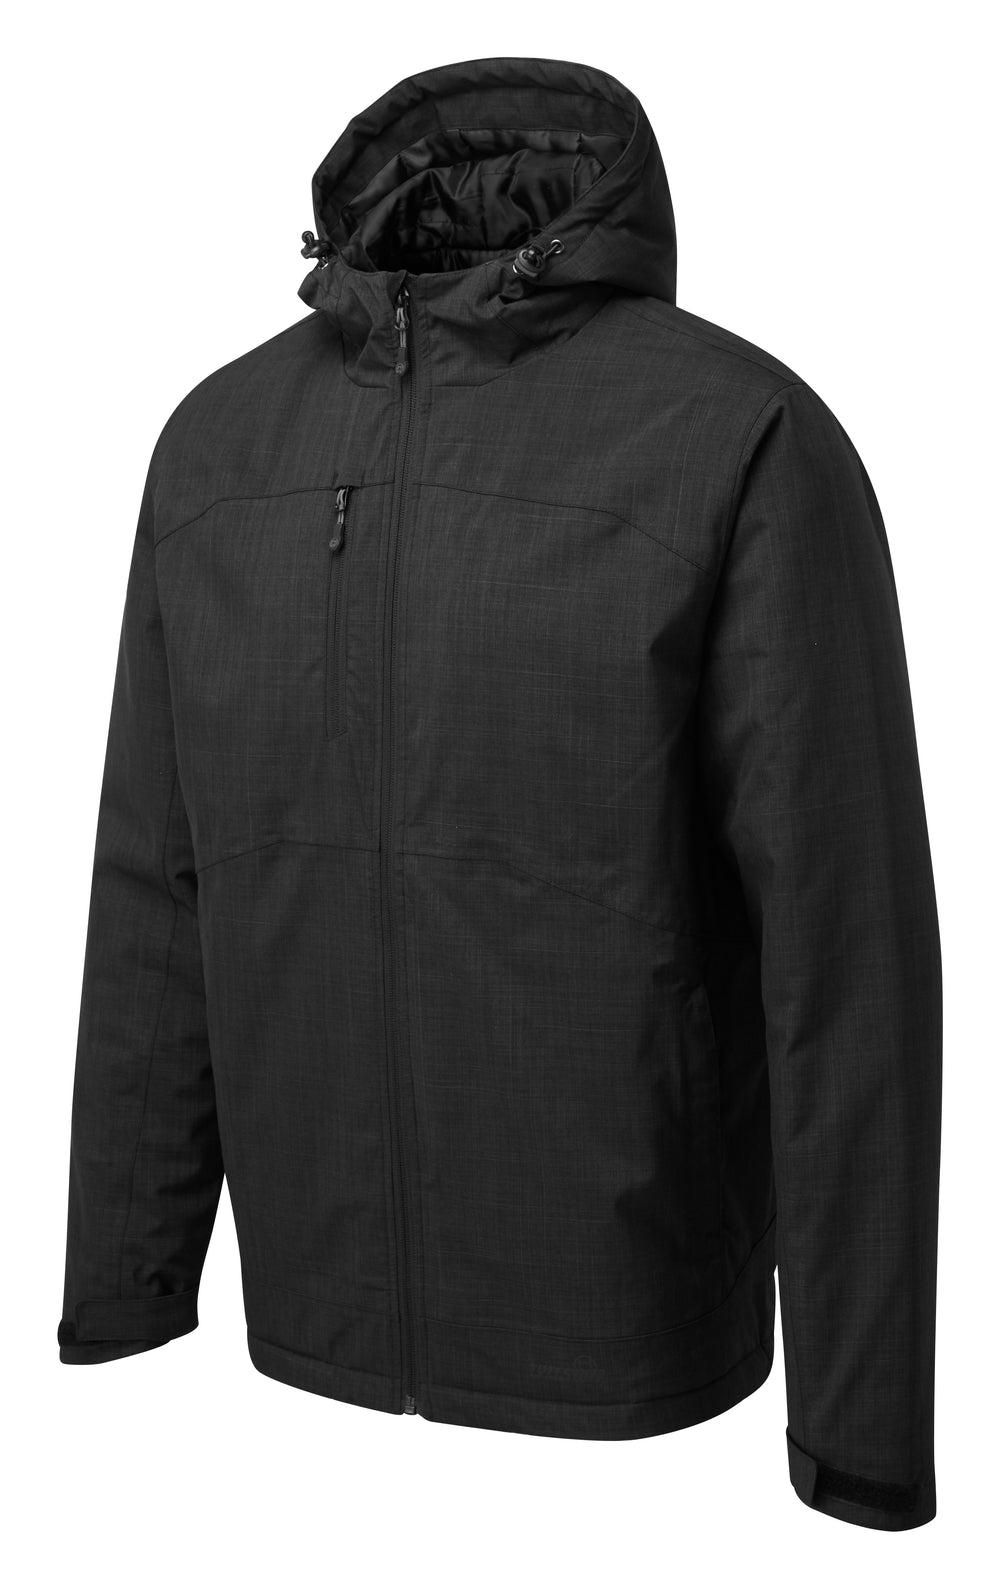 Tuffstuff 259 Hopton Hooded Waterproof Jacket